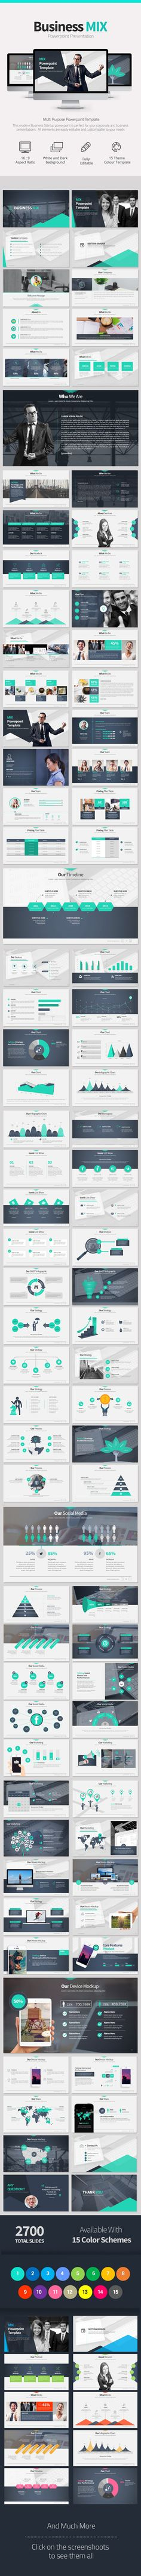 Business Mix PowerPoint Template #design #slides #presentation Download: http://graphicriver.net/item/business-mix-powerpointpresentation/13124753?ref=ksioks